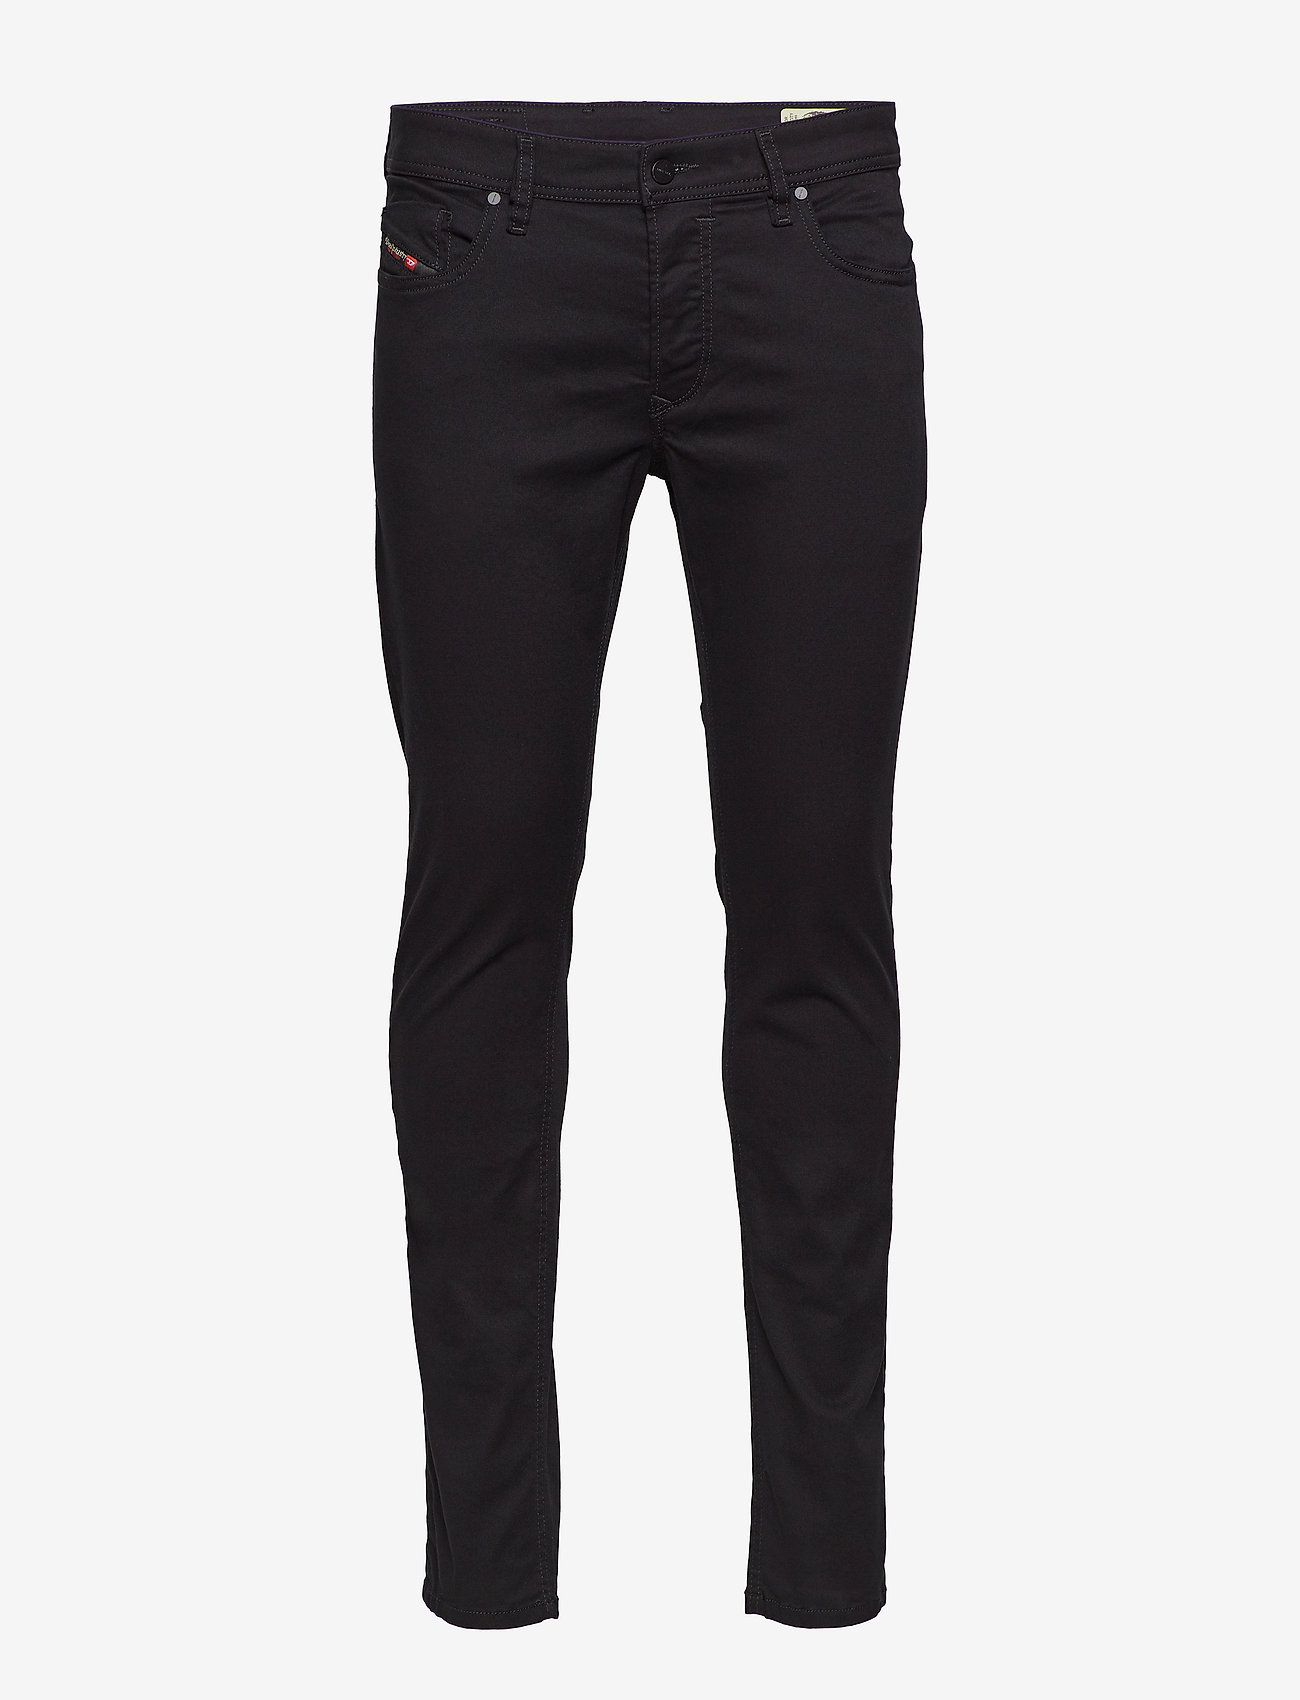 Diesel Men - SLEENKER - slim jeans - black/denim